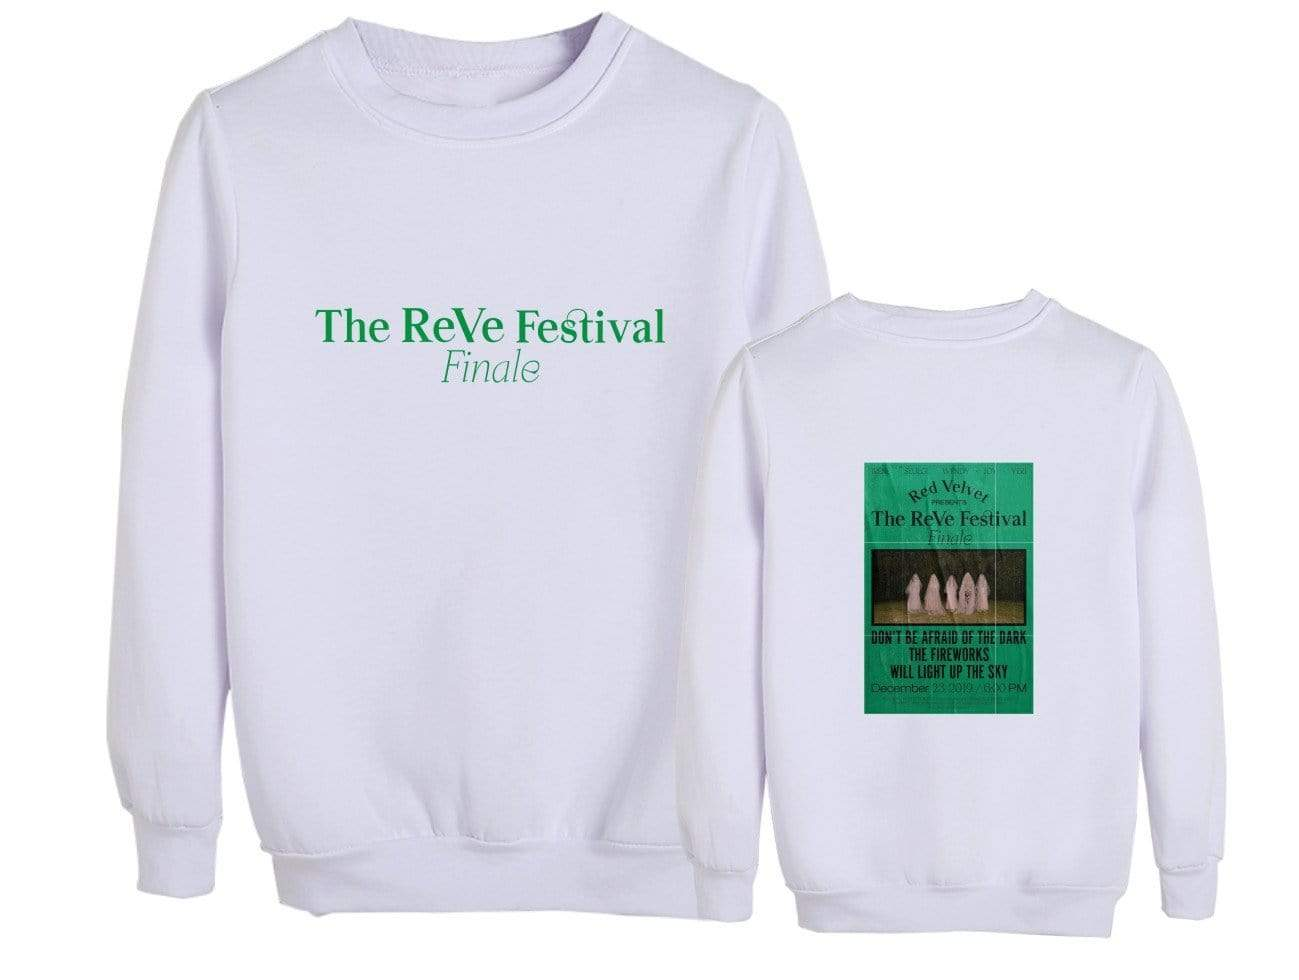 Red Velvet TheReVe Festival Finale Sweatshirt (A款-白色 加绒 S)